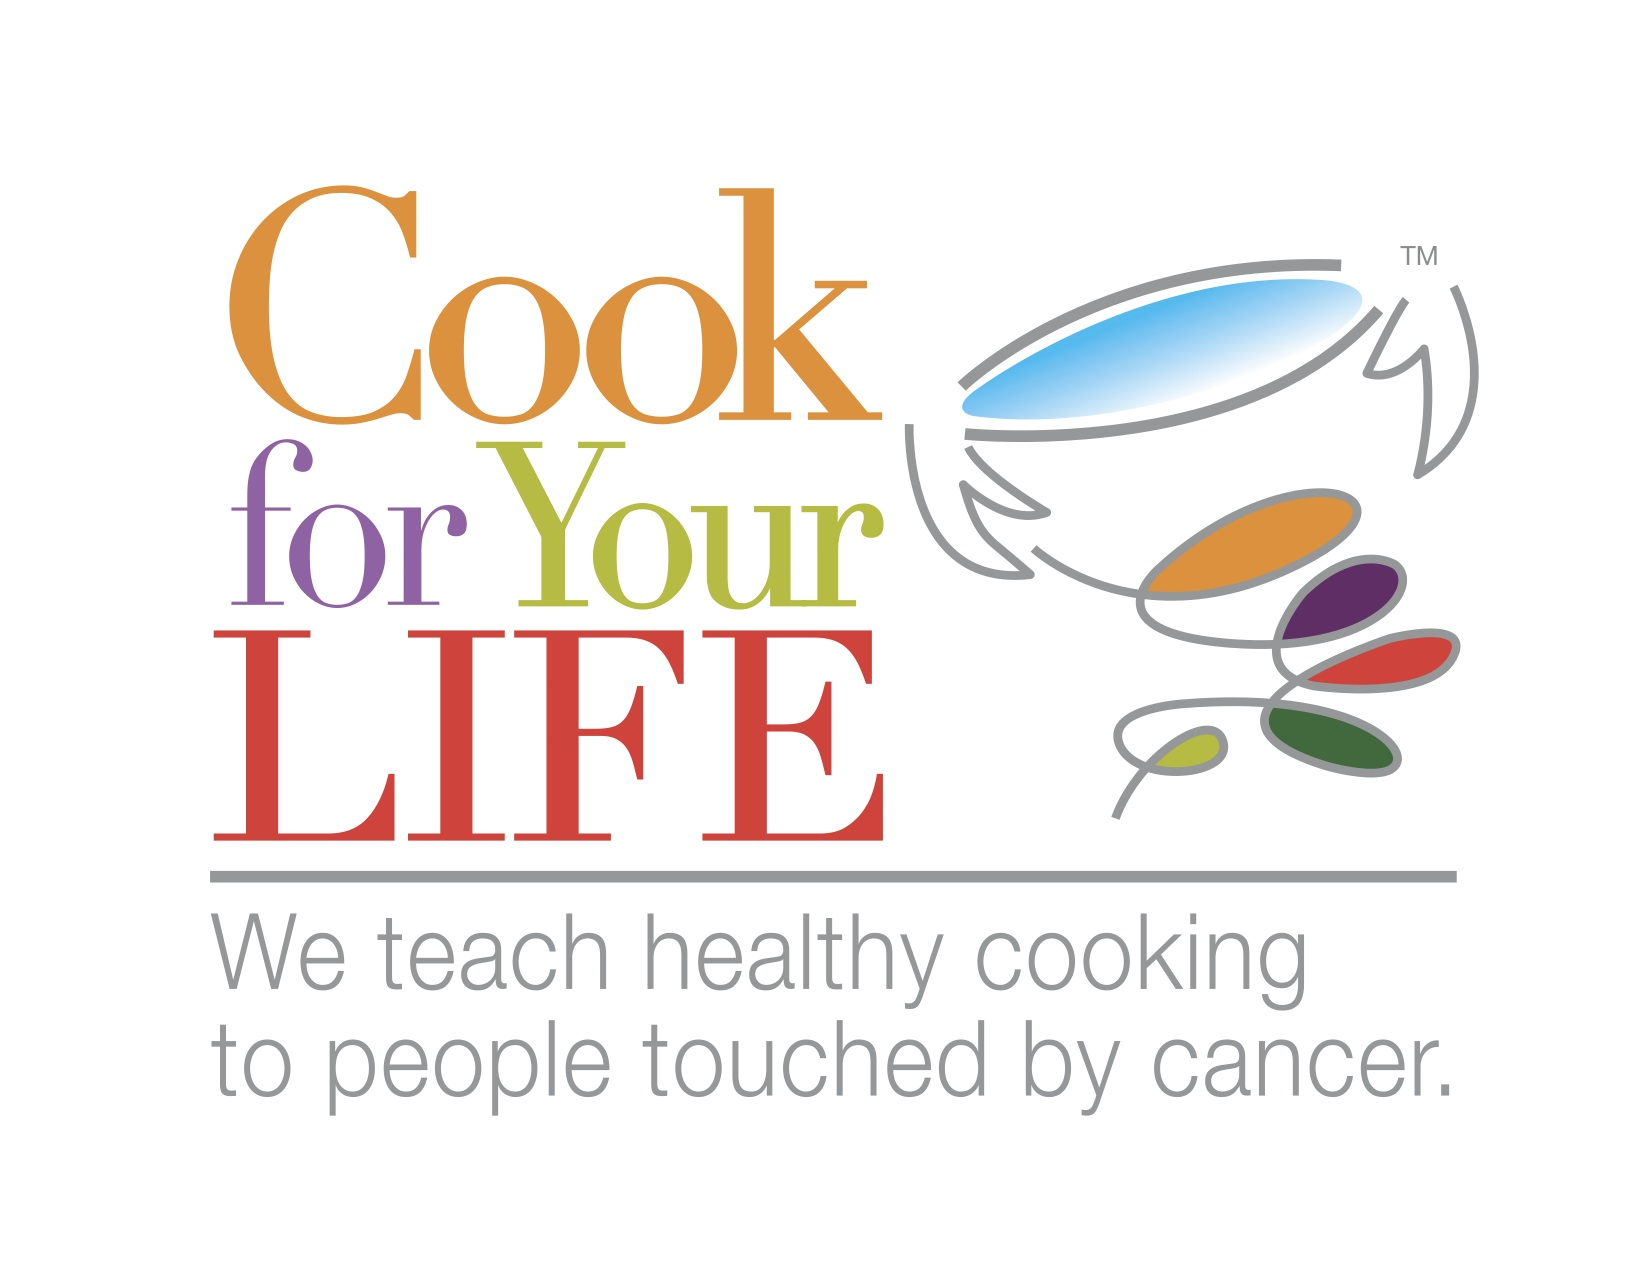 How many cancers to cook